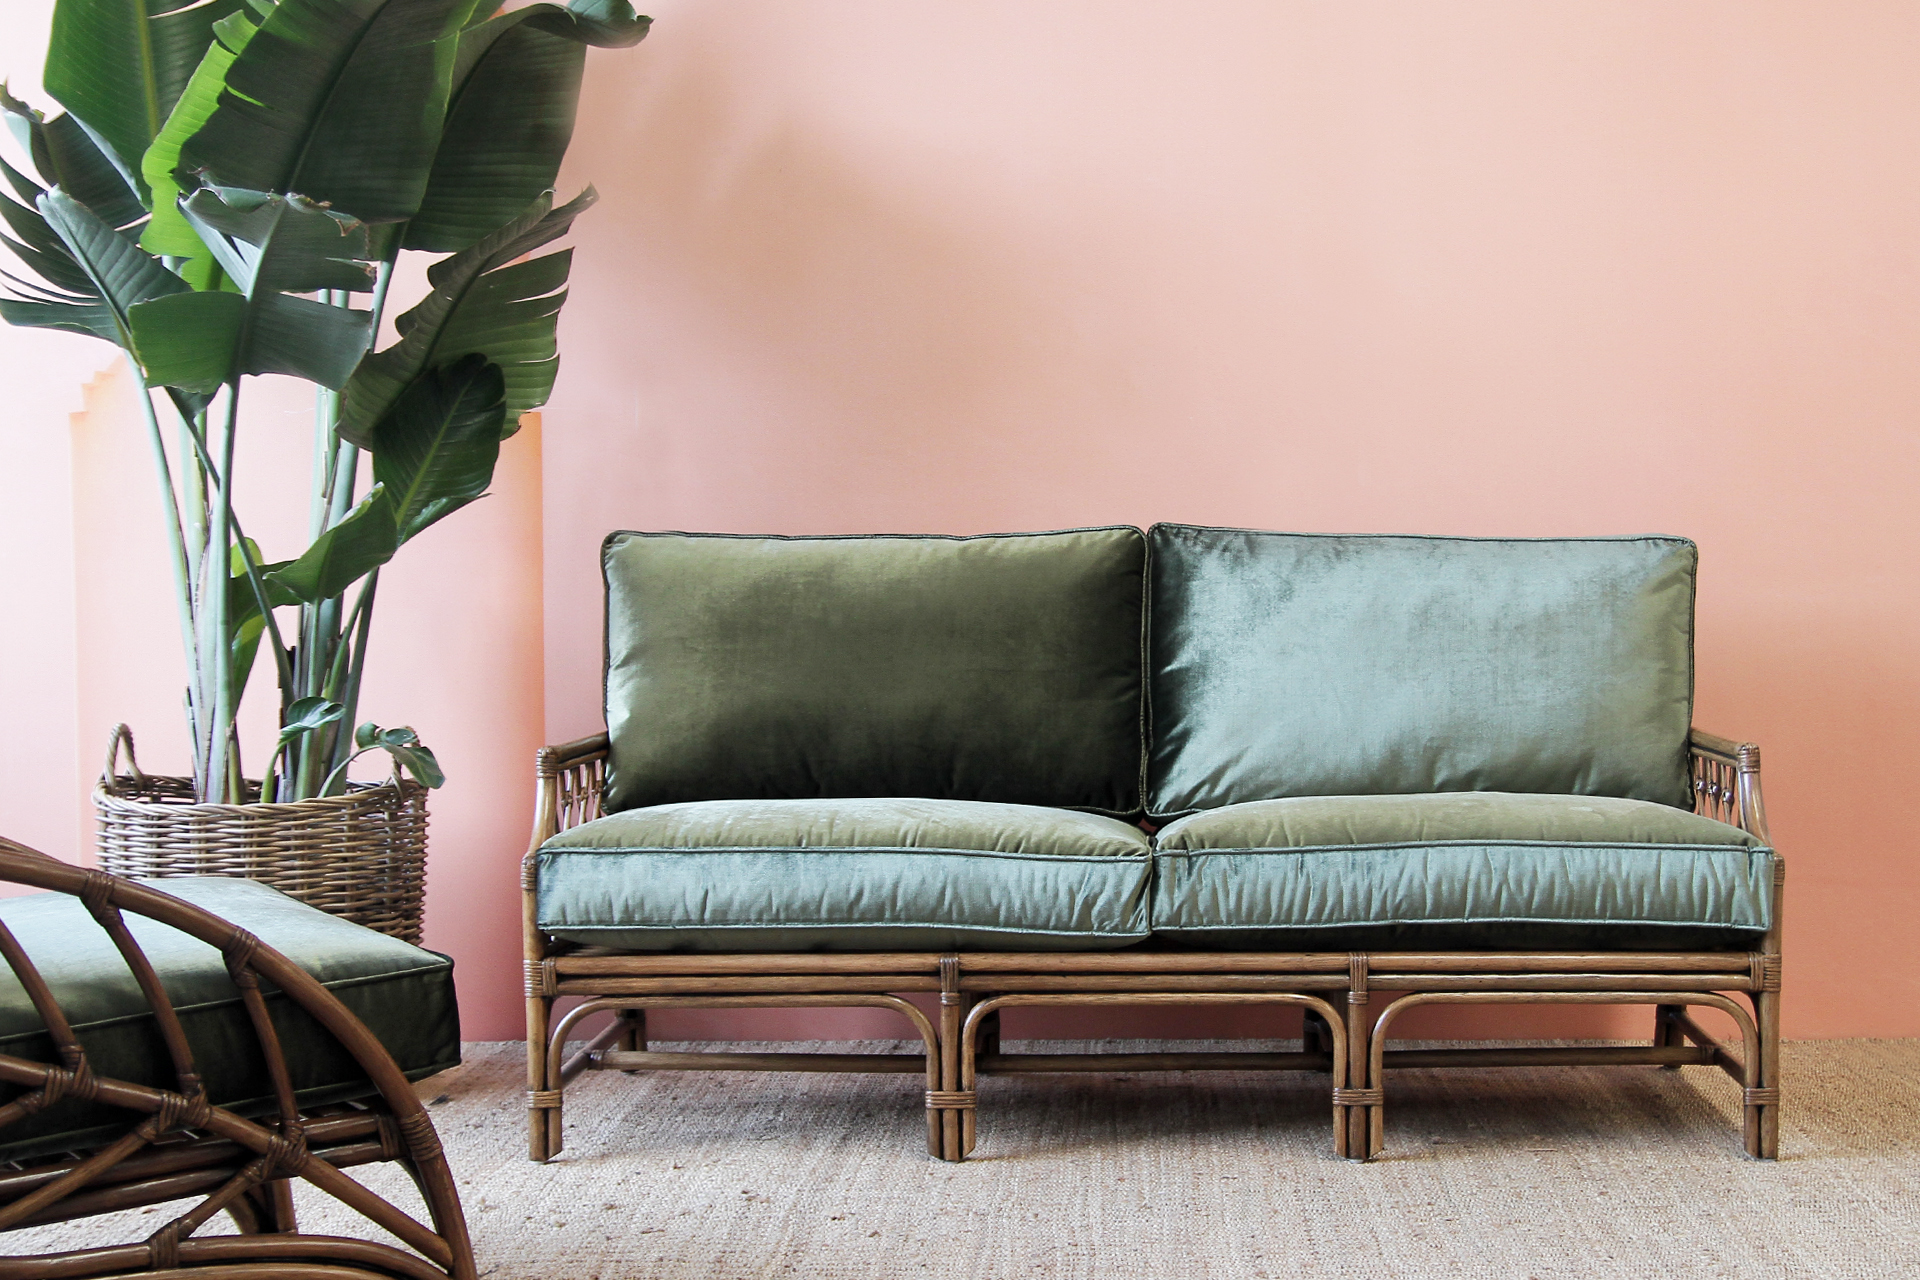 rattan love sofa daybed eilersen baseline m chaiselong catalina 3 seater naturally cane and